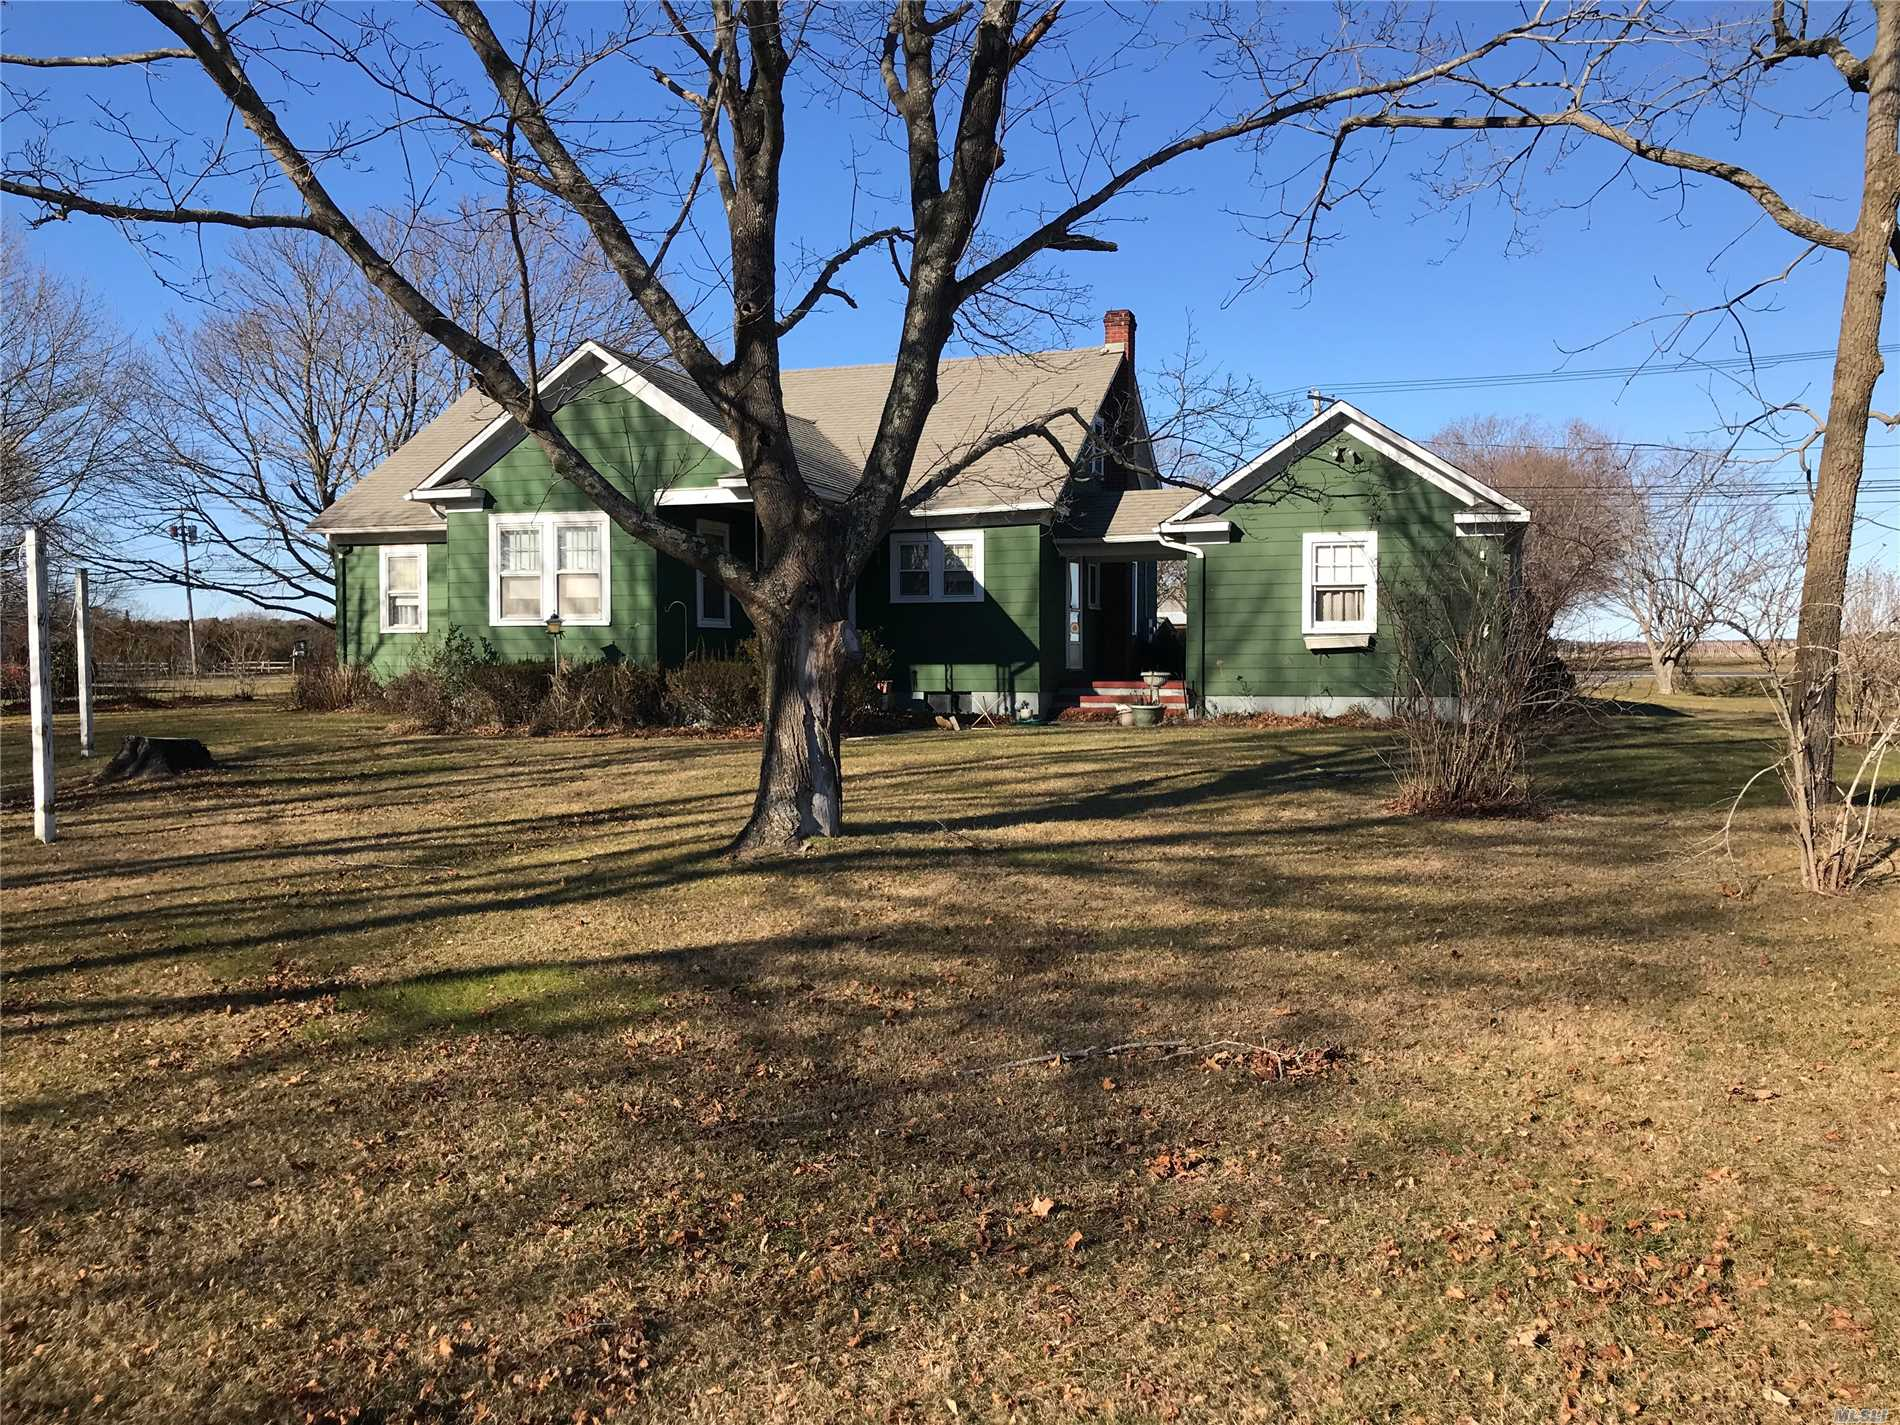 Custo Designed And Built Craftsman Style 3 Br 2 Bath Ranch. Large Walk Around Attic, Full Basement And Detached Garage. Spacious With Hardwood Floors On 1 Acre. 2 Open Air Porches.